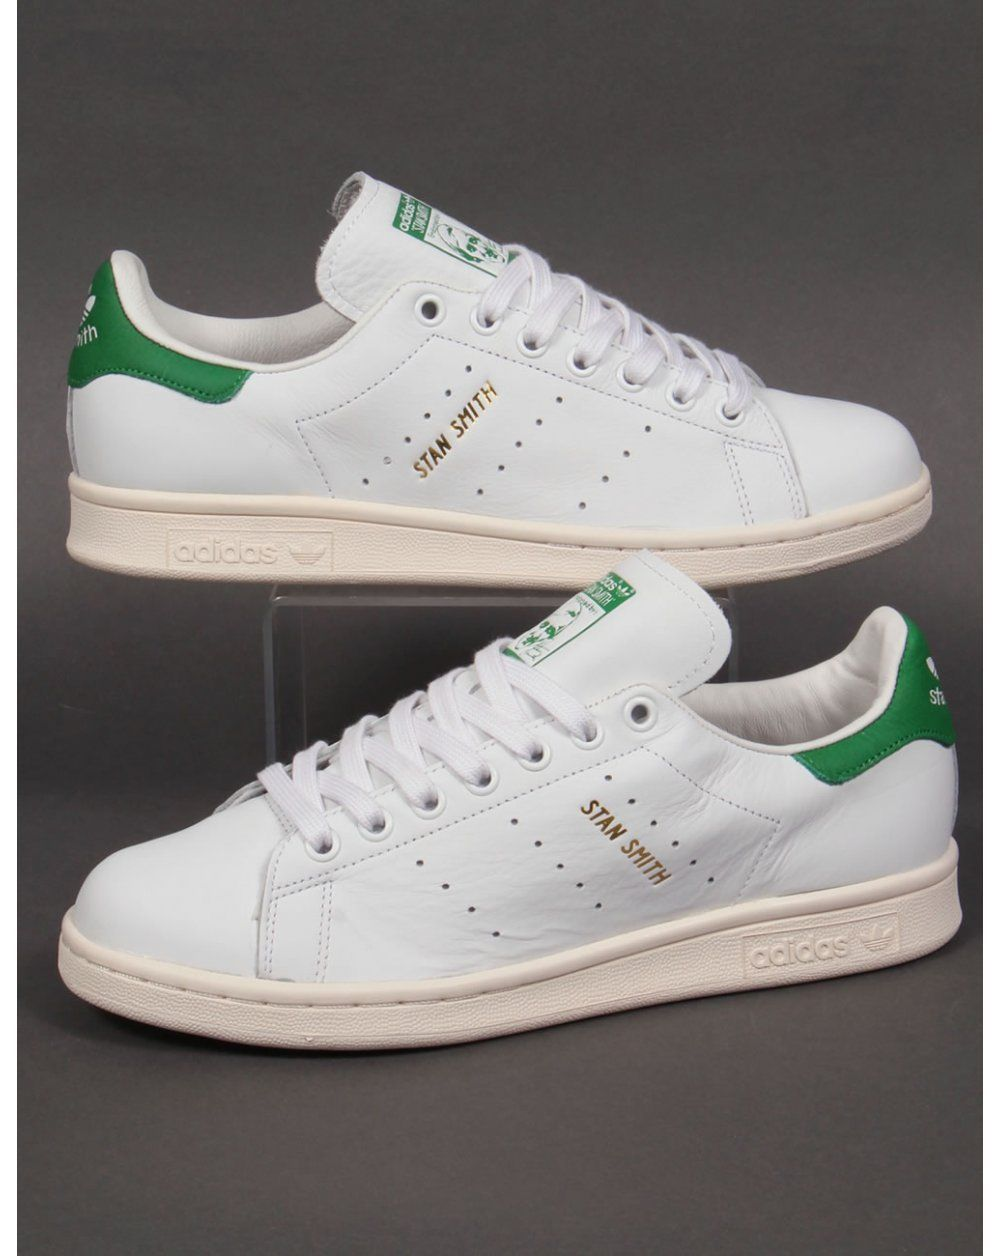 1ca128aeb99fe Adidas Originals Stan Smith Trainers in White   Green (Gold Print) (UK  Sizes) in Clothes